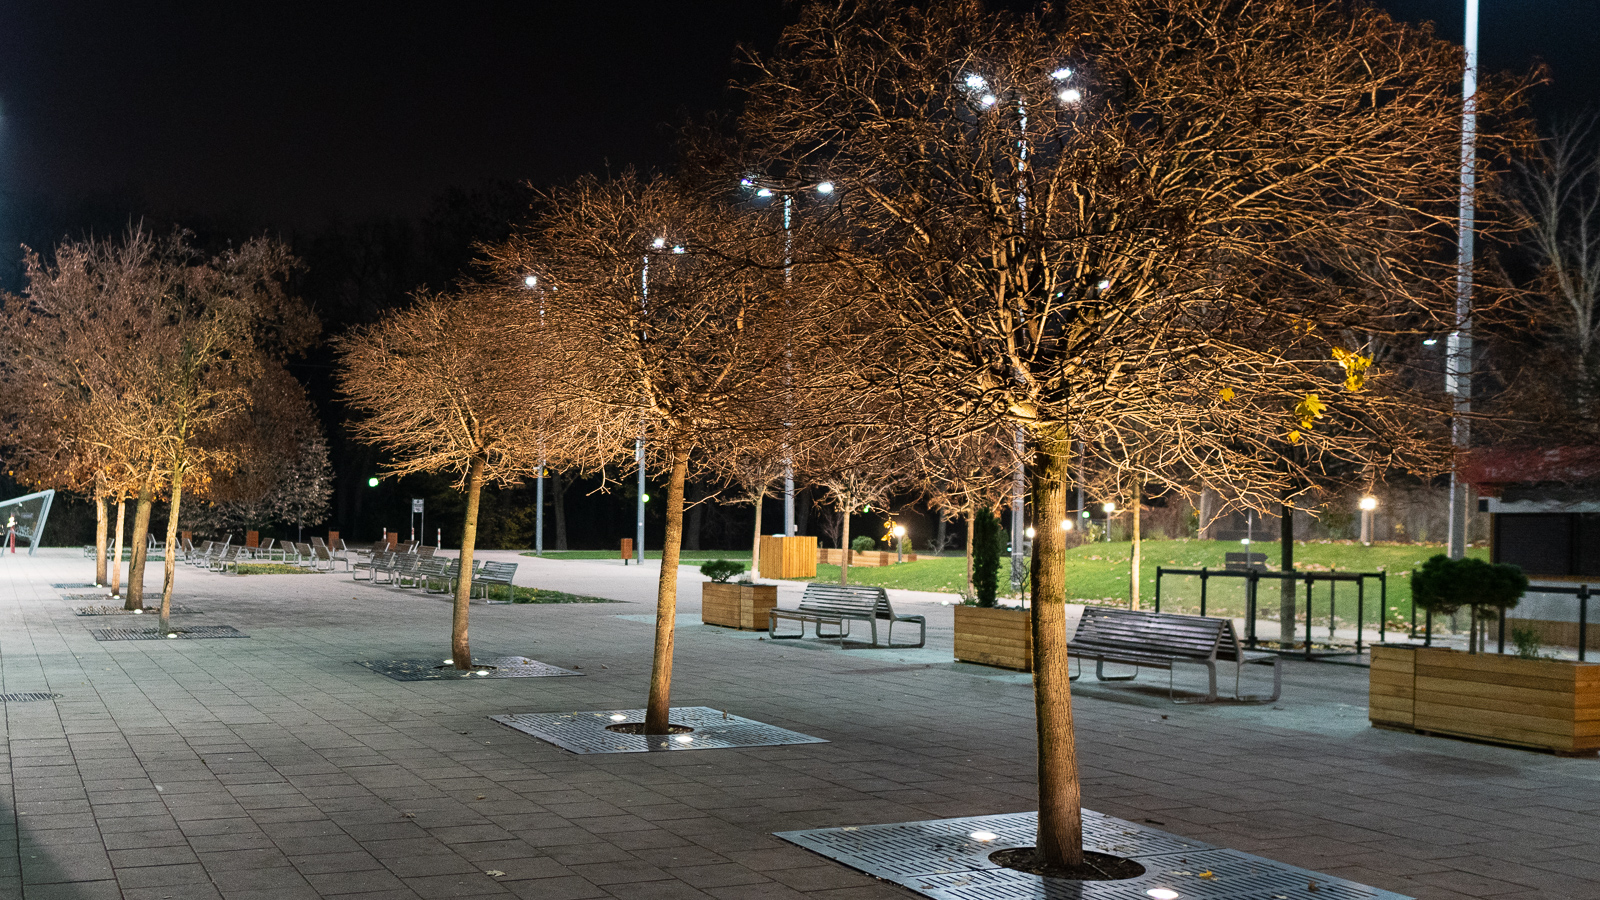 Lighting of outdoor areas